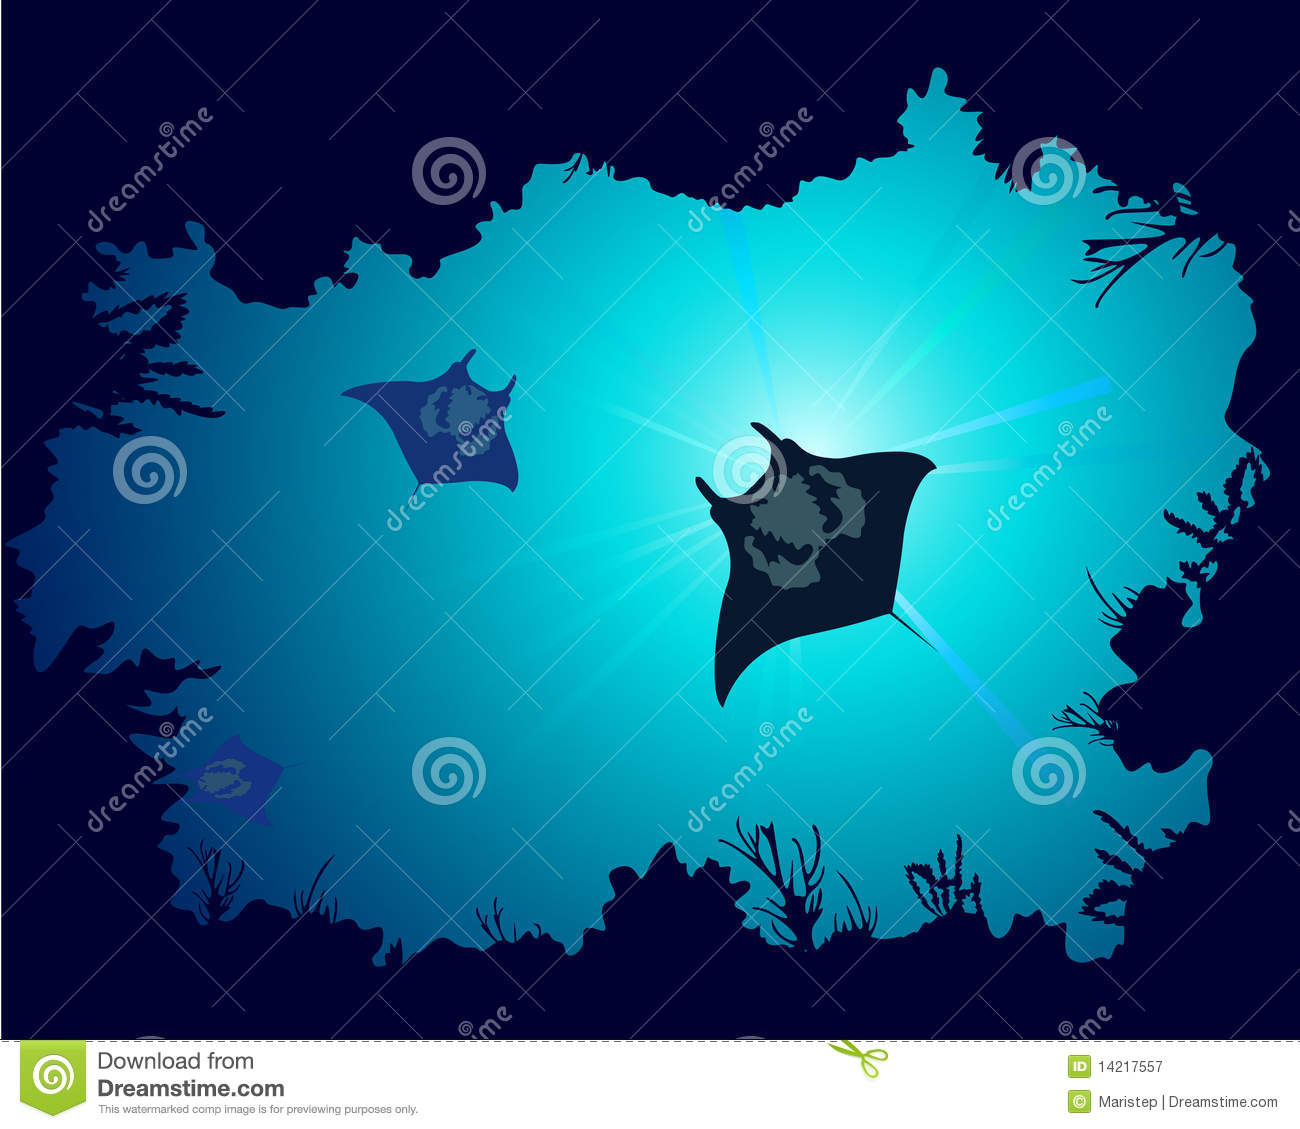 Coral Reef Background: Background Of A Coral Reef With Manta Ray Royalty Free